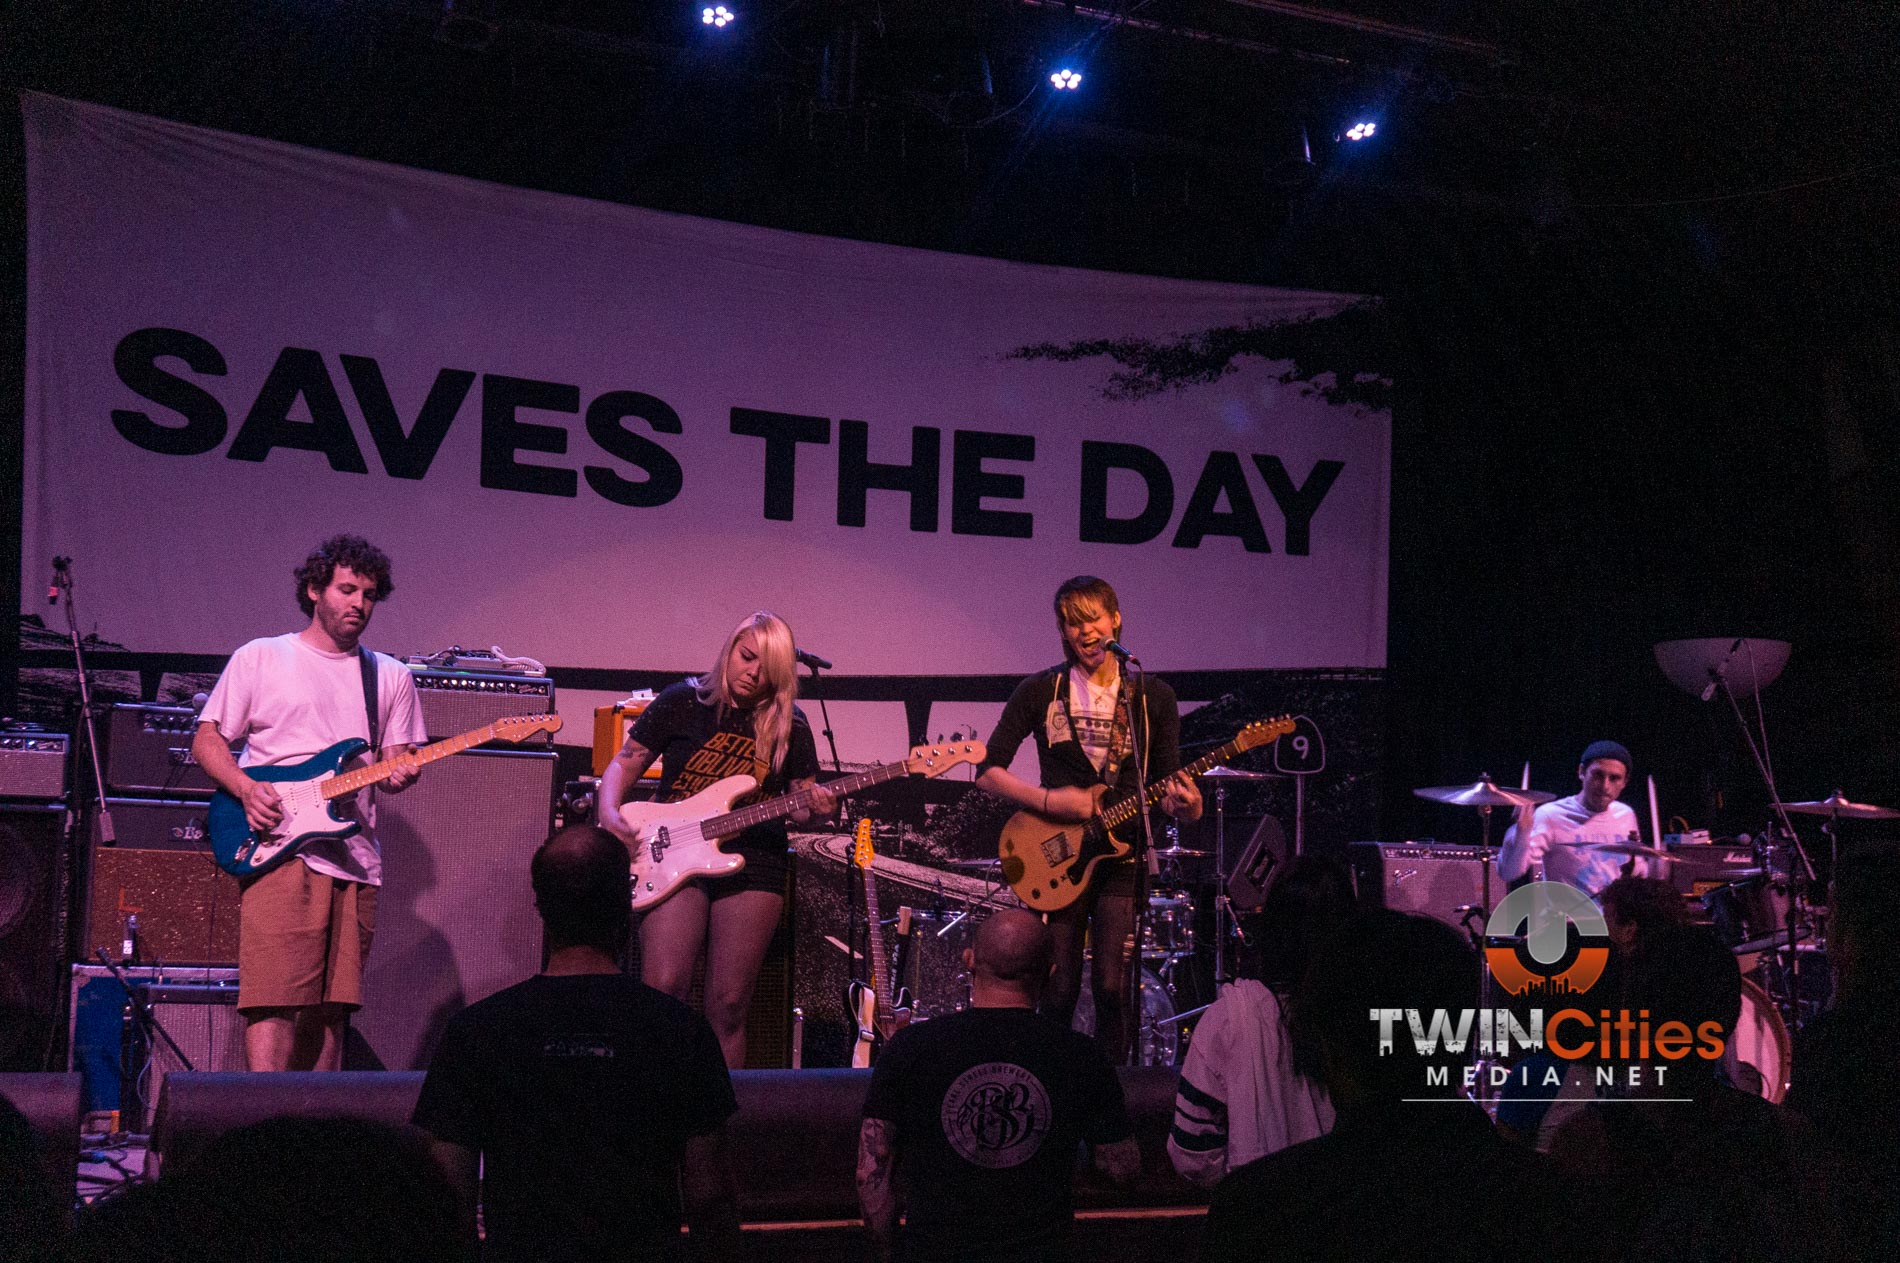 Saves-the-day-1